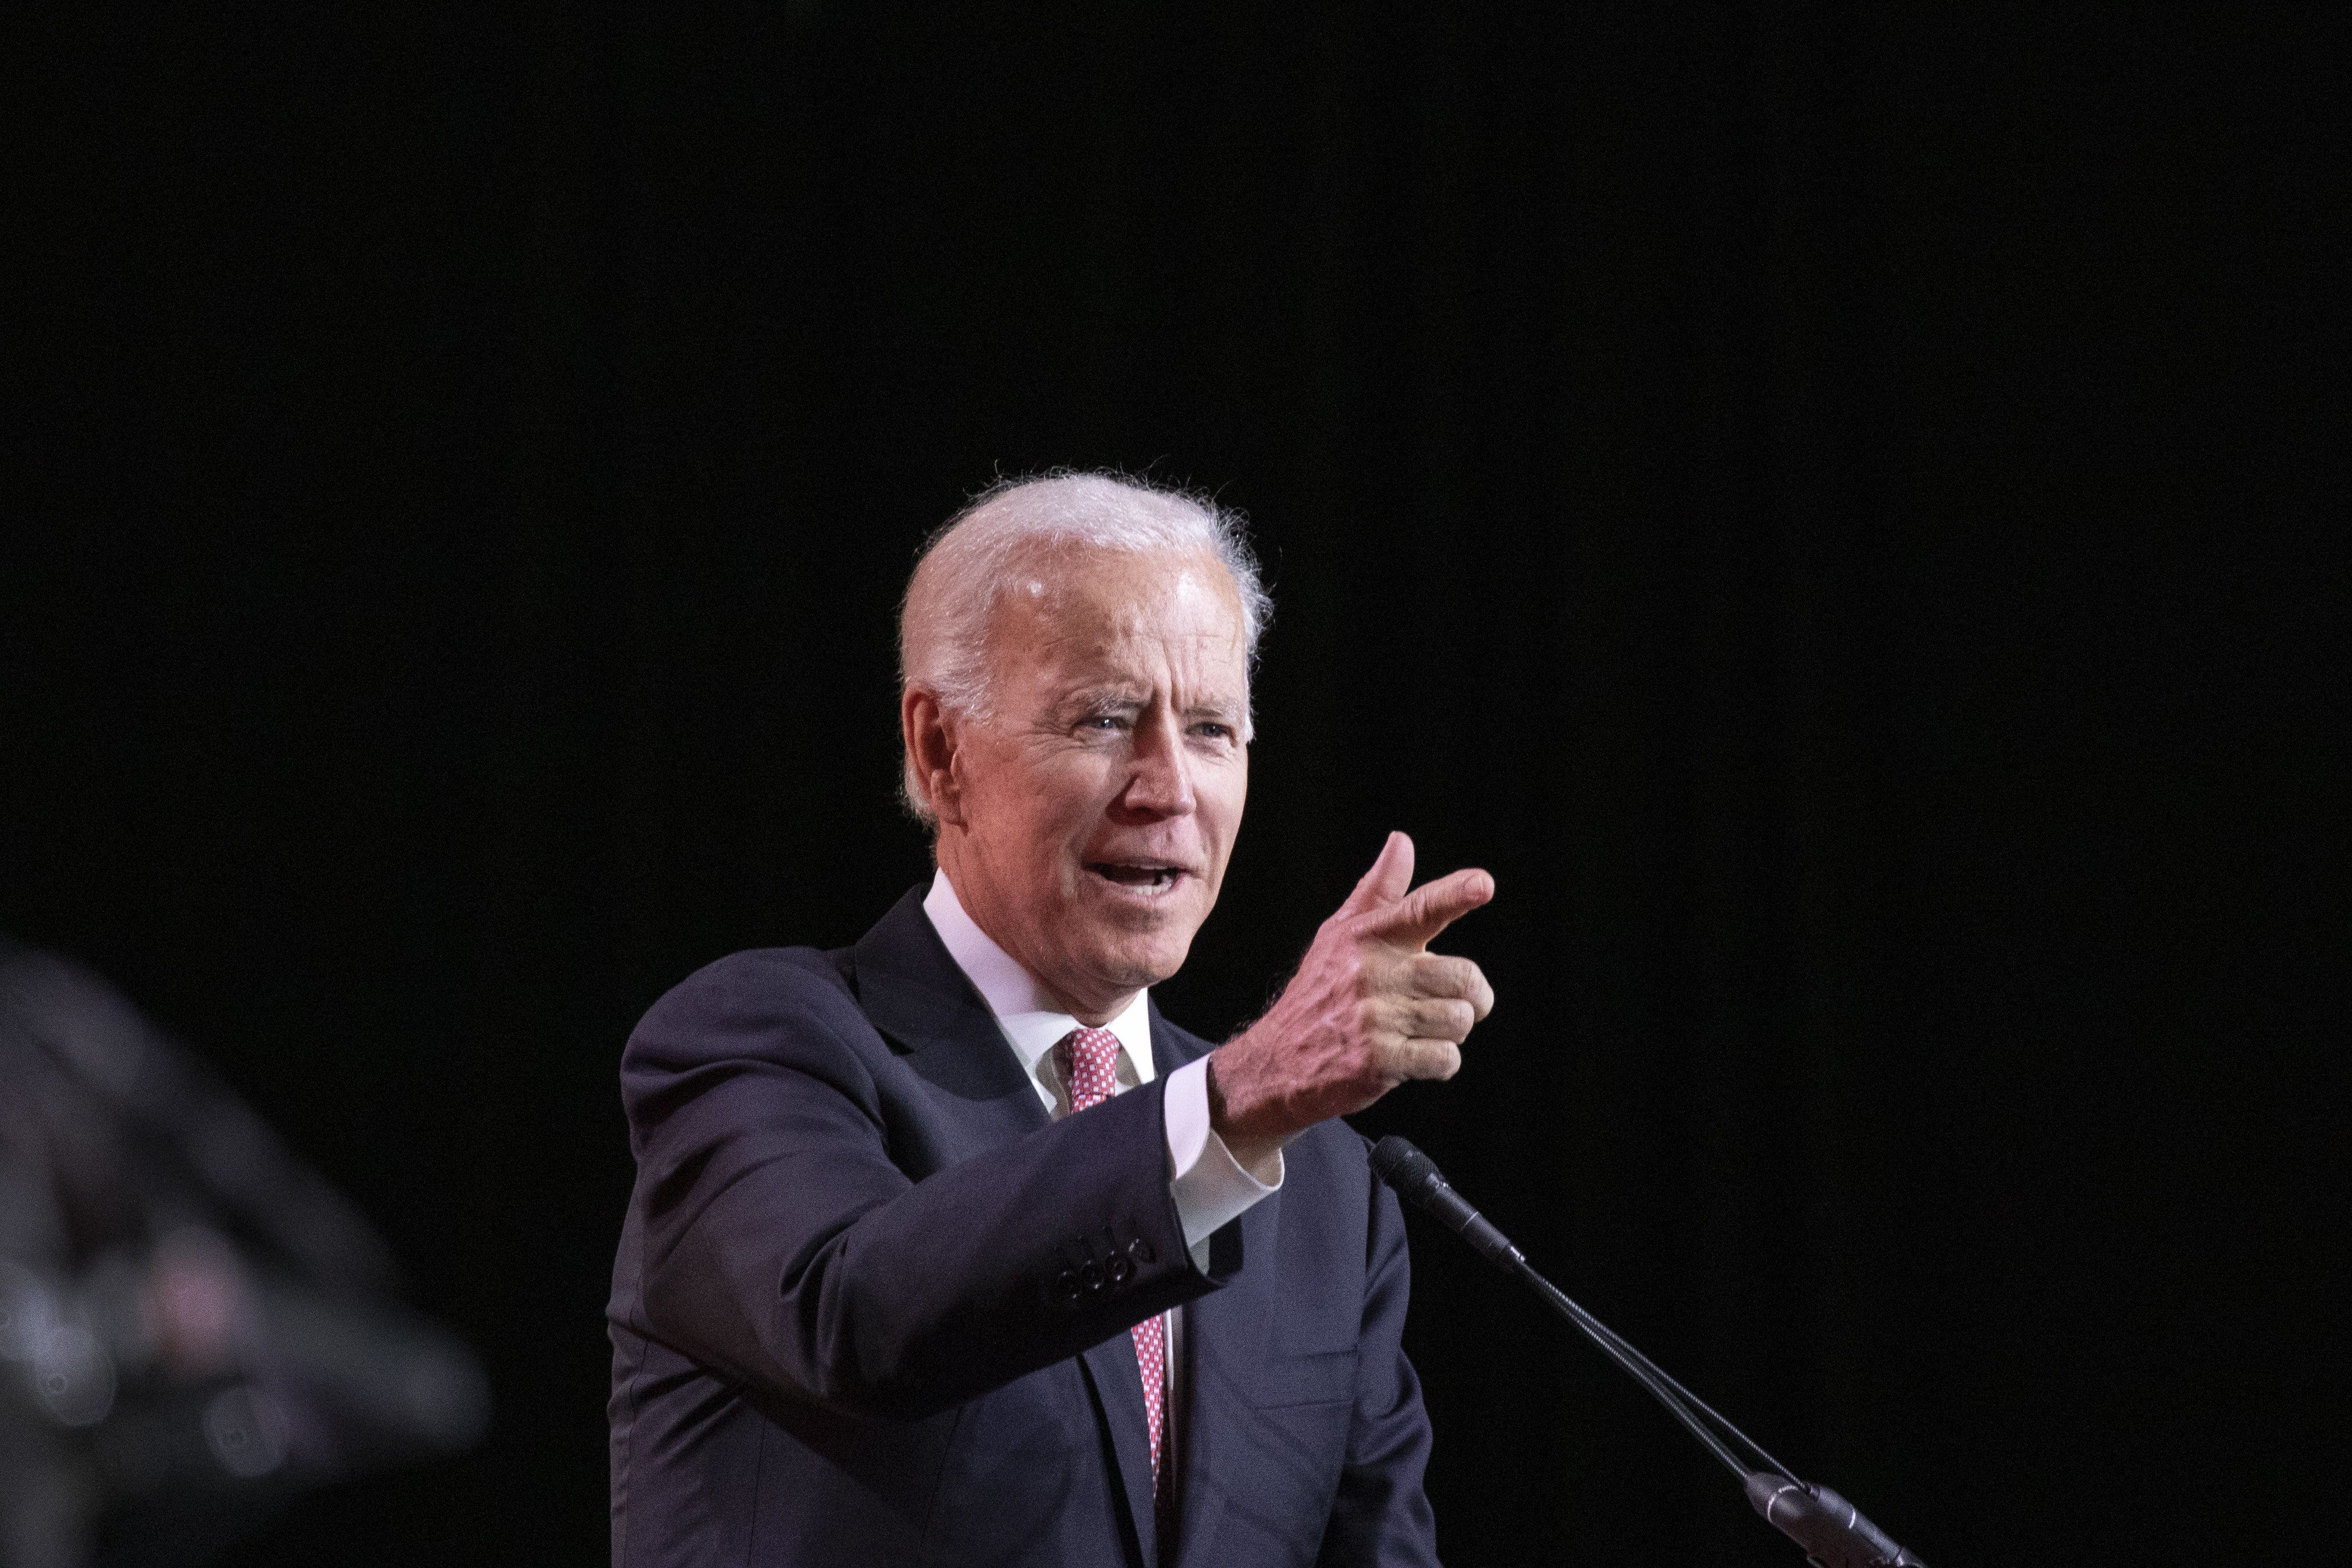 Former U.S. Vice President Joe Biden speaks during the U.S. Conference of Mayors (USCM) Annual Winter Meeting in Washington, D.C., U.S., on Thursday Jan. 24, 2019. During the meeting, mayors from both sides of the aisle, from cities rural, urban and suburban, attend sessions on a range of priorities, including infrastructure, immigration, opportunity zones, climate, automation and the economic future of cities. Photographer: Alex Wroblewski/Bloomberg via Getty Images